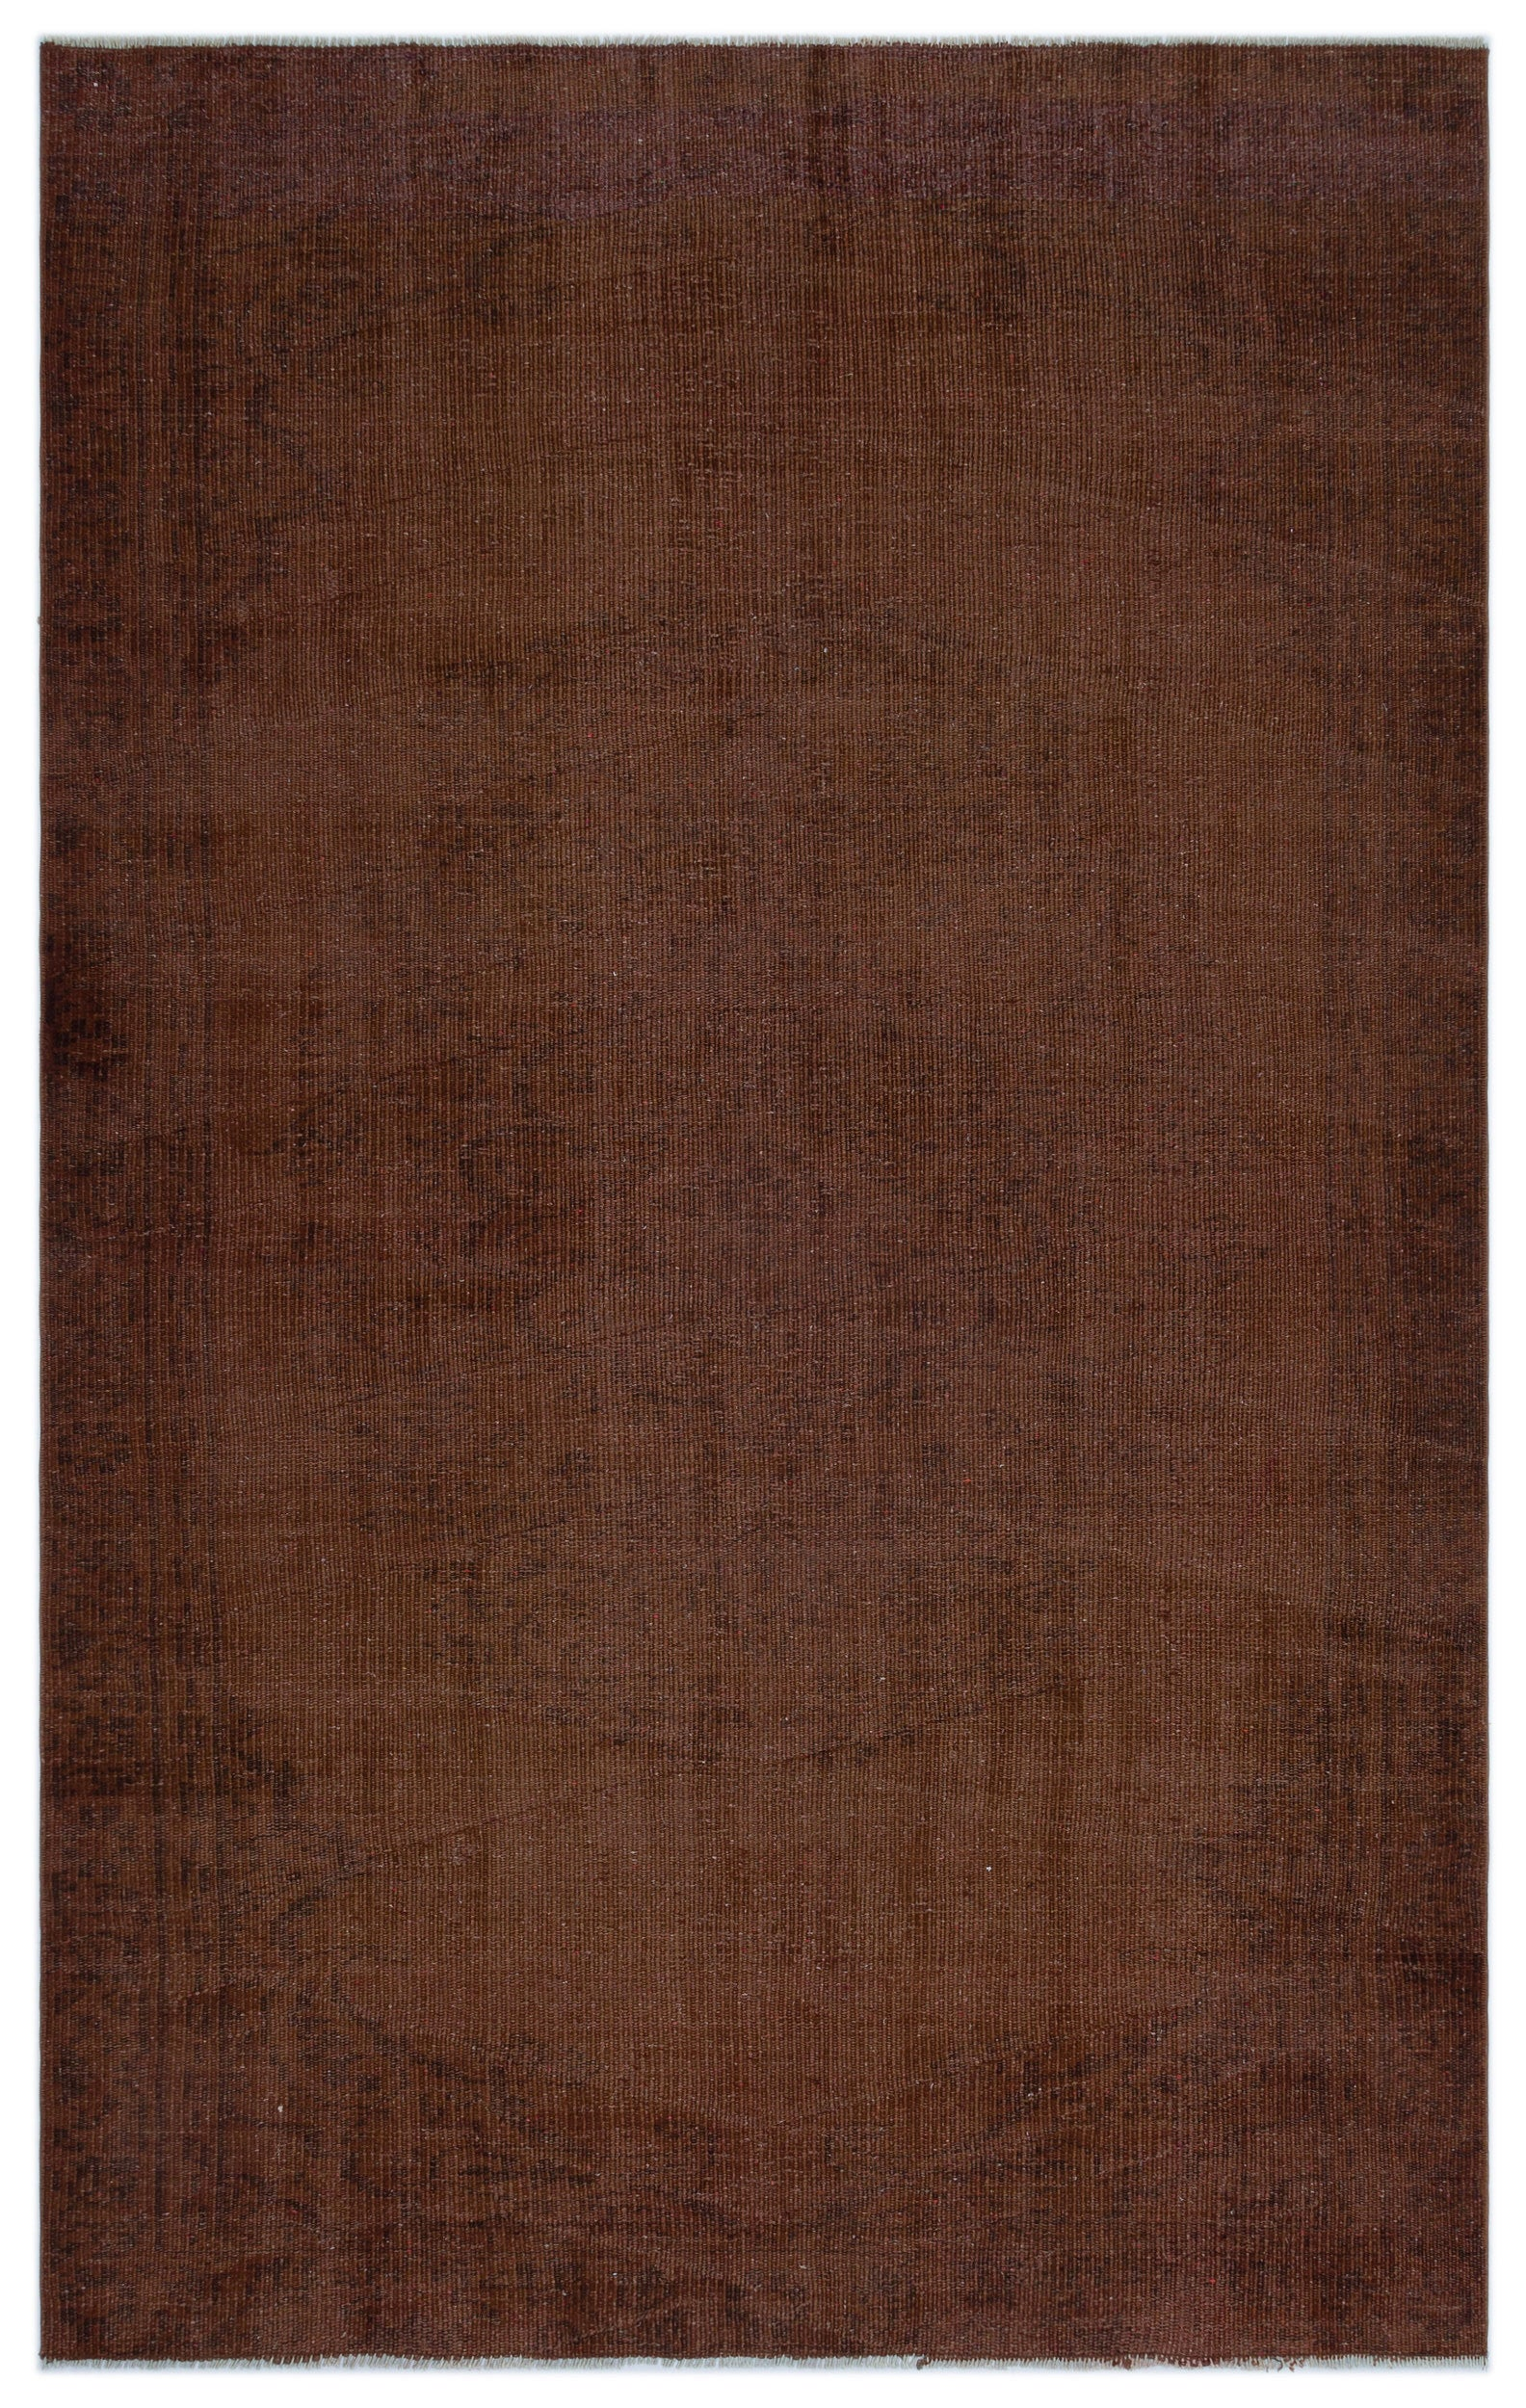 Brown Over Dyed Vintage Rug 5'3'' x 8'5'' ft 160 x 257 cm